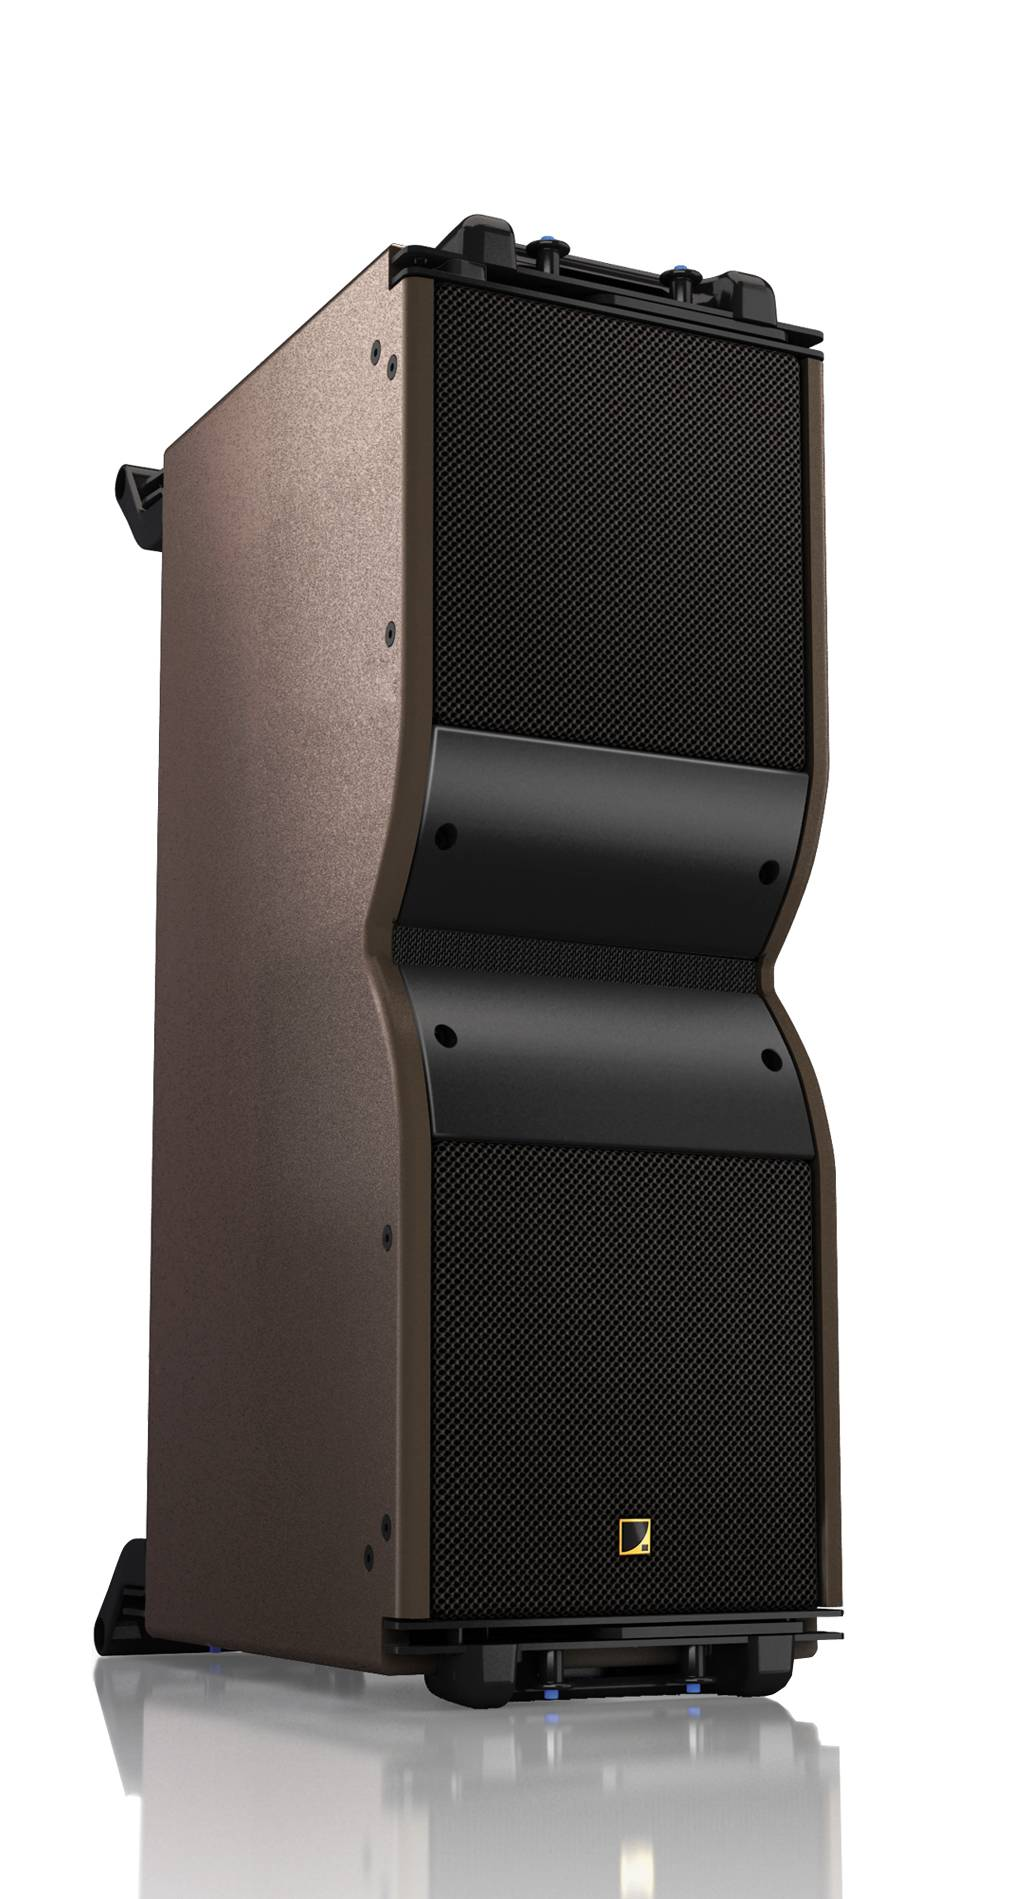 L-Acoustics KARA loudspeaker systems now available for hire